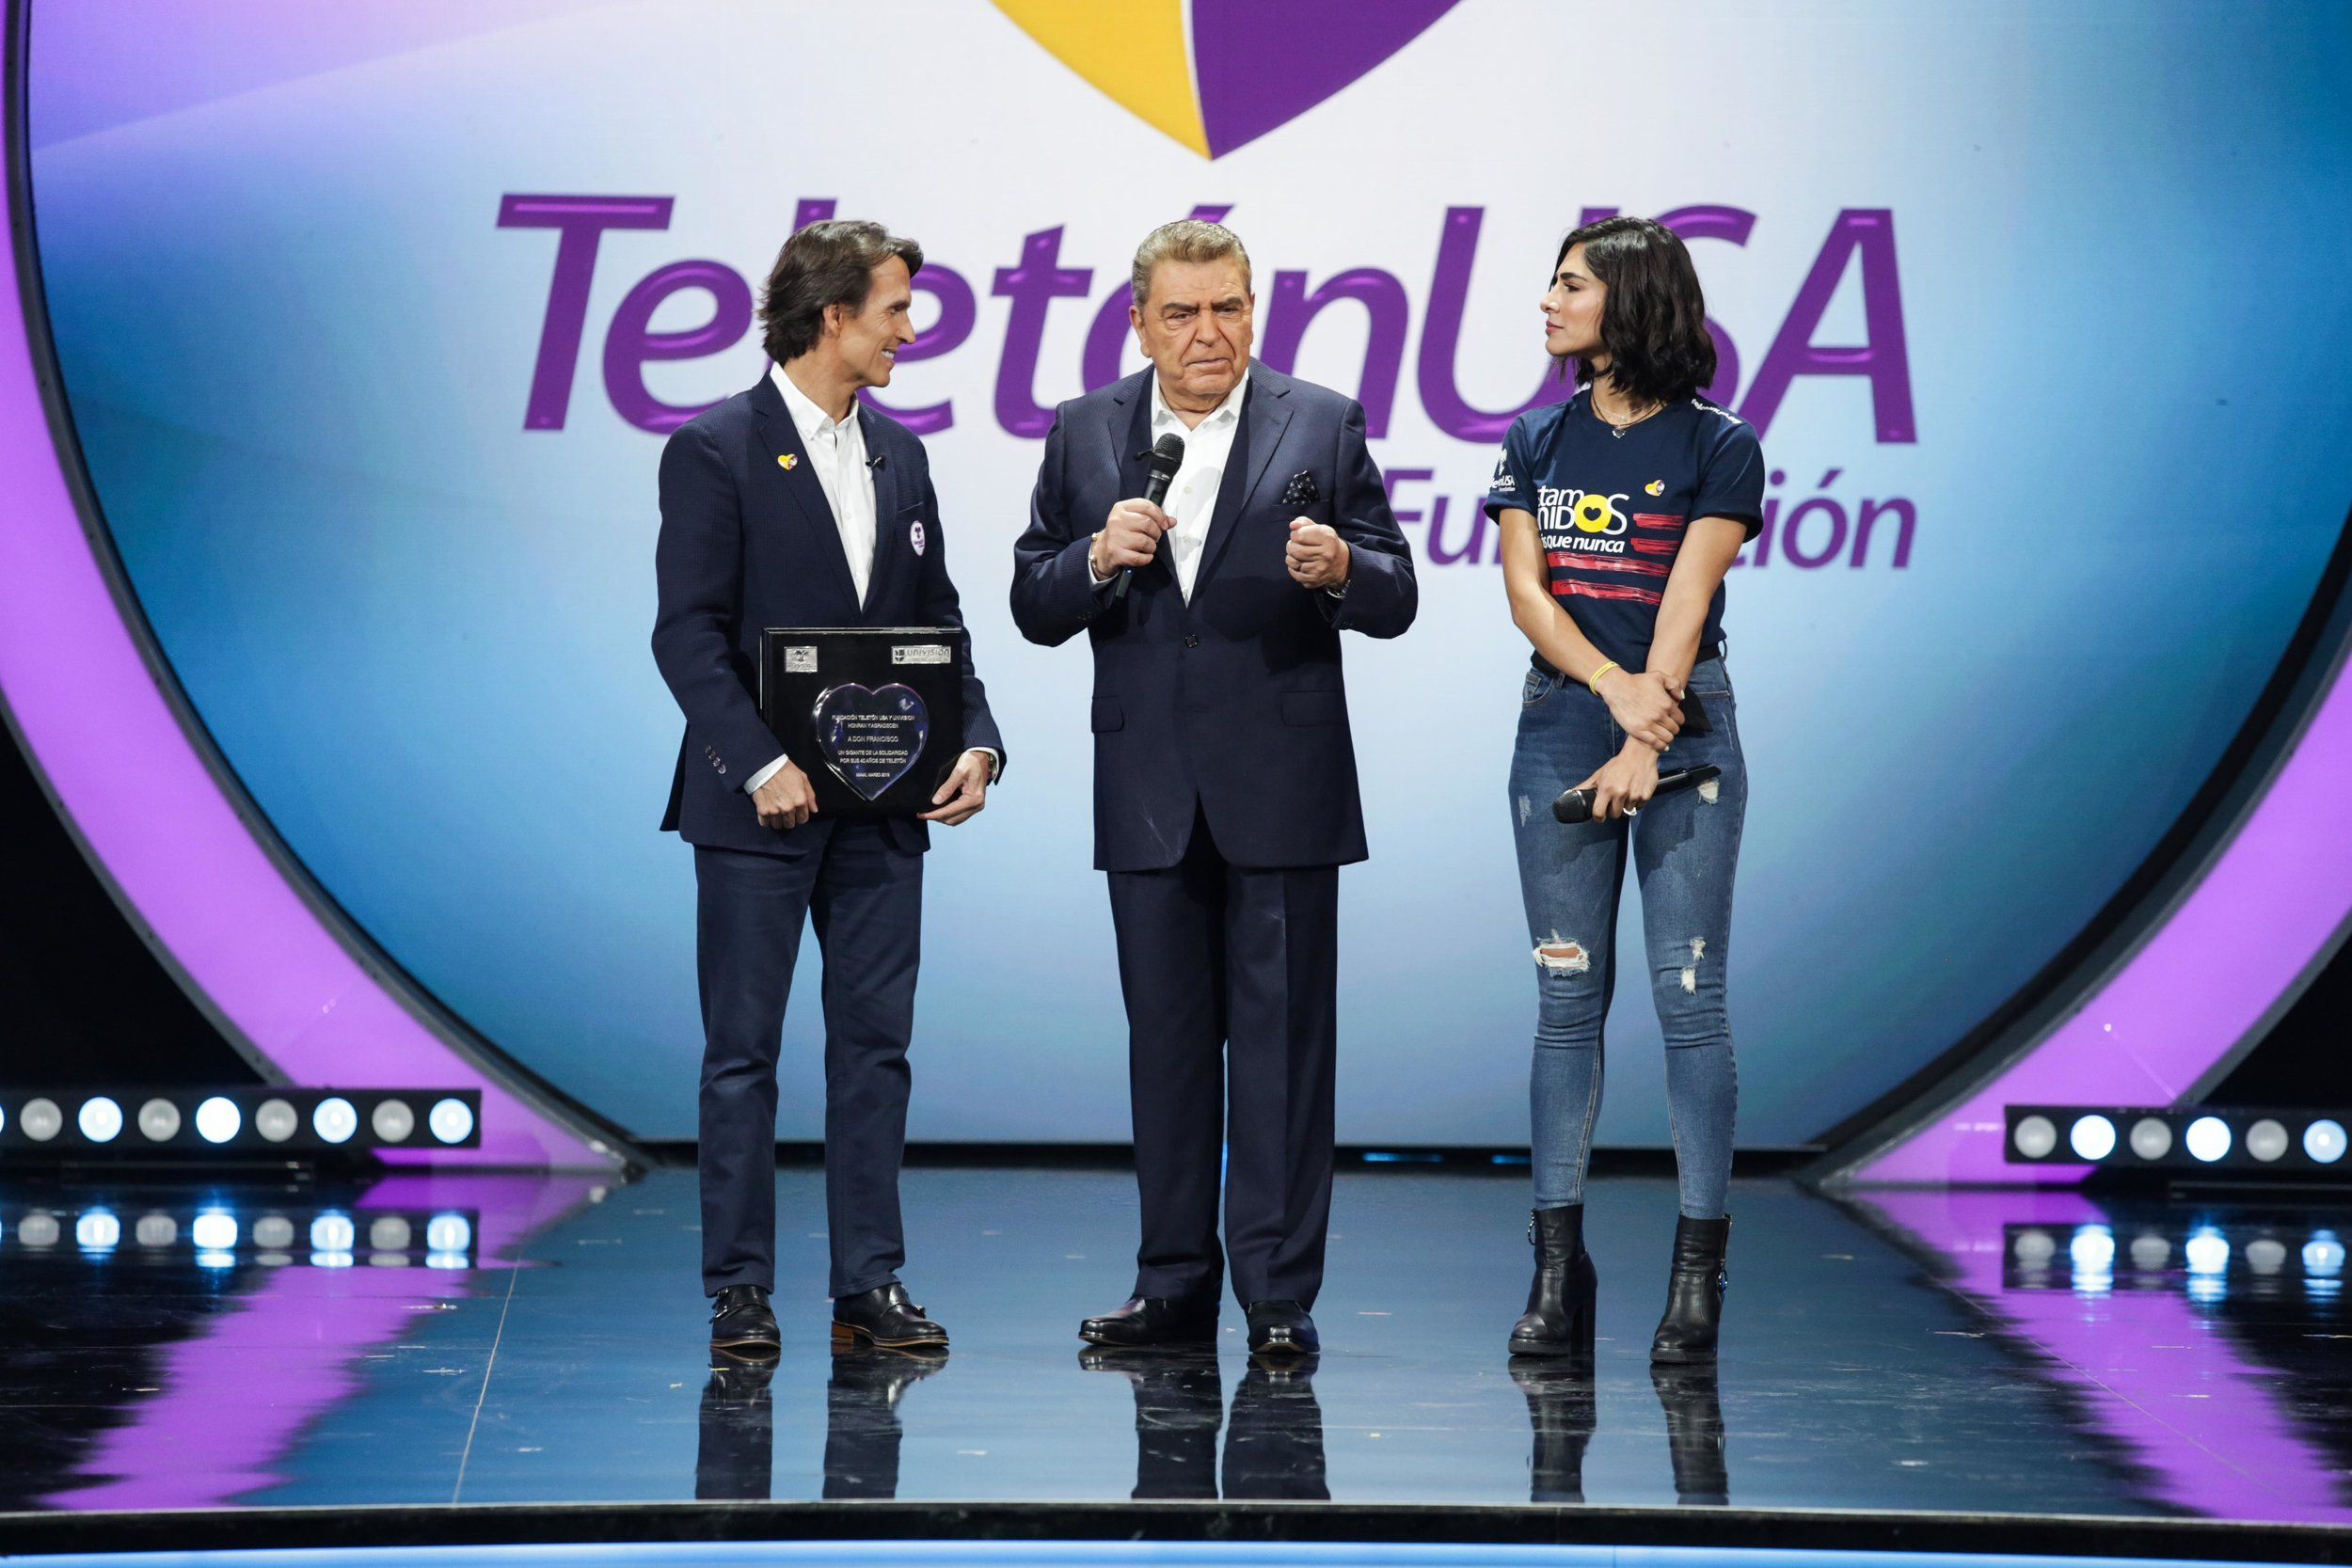 Don Francisco en Teleton 2019 2.jpg